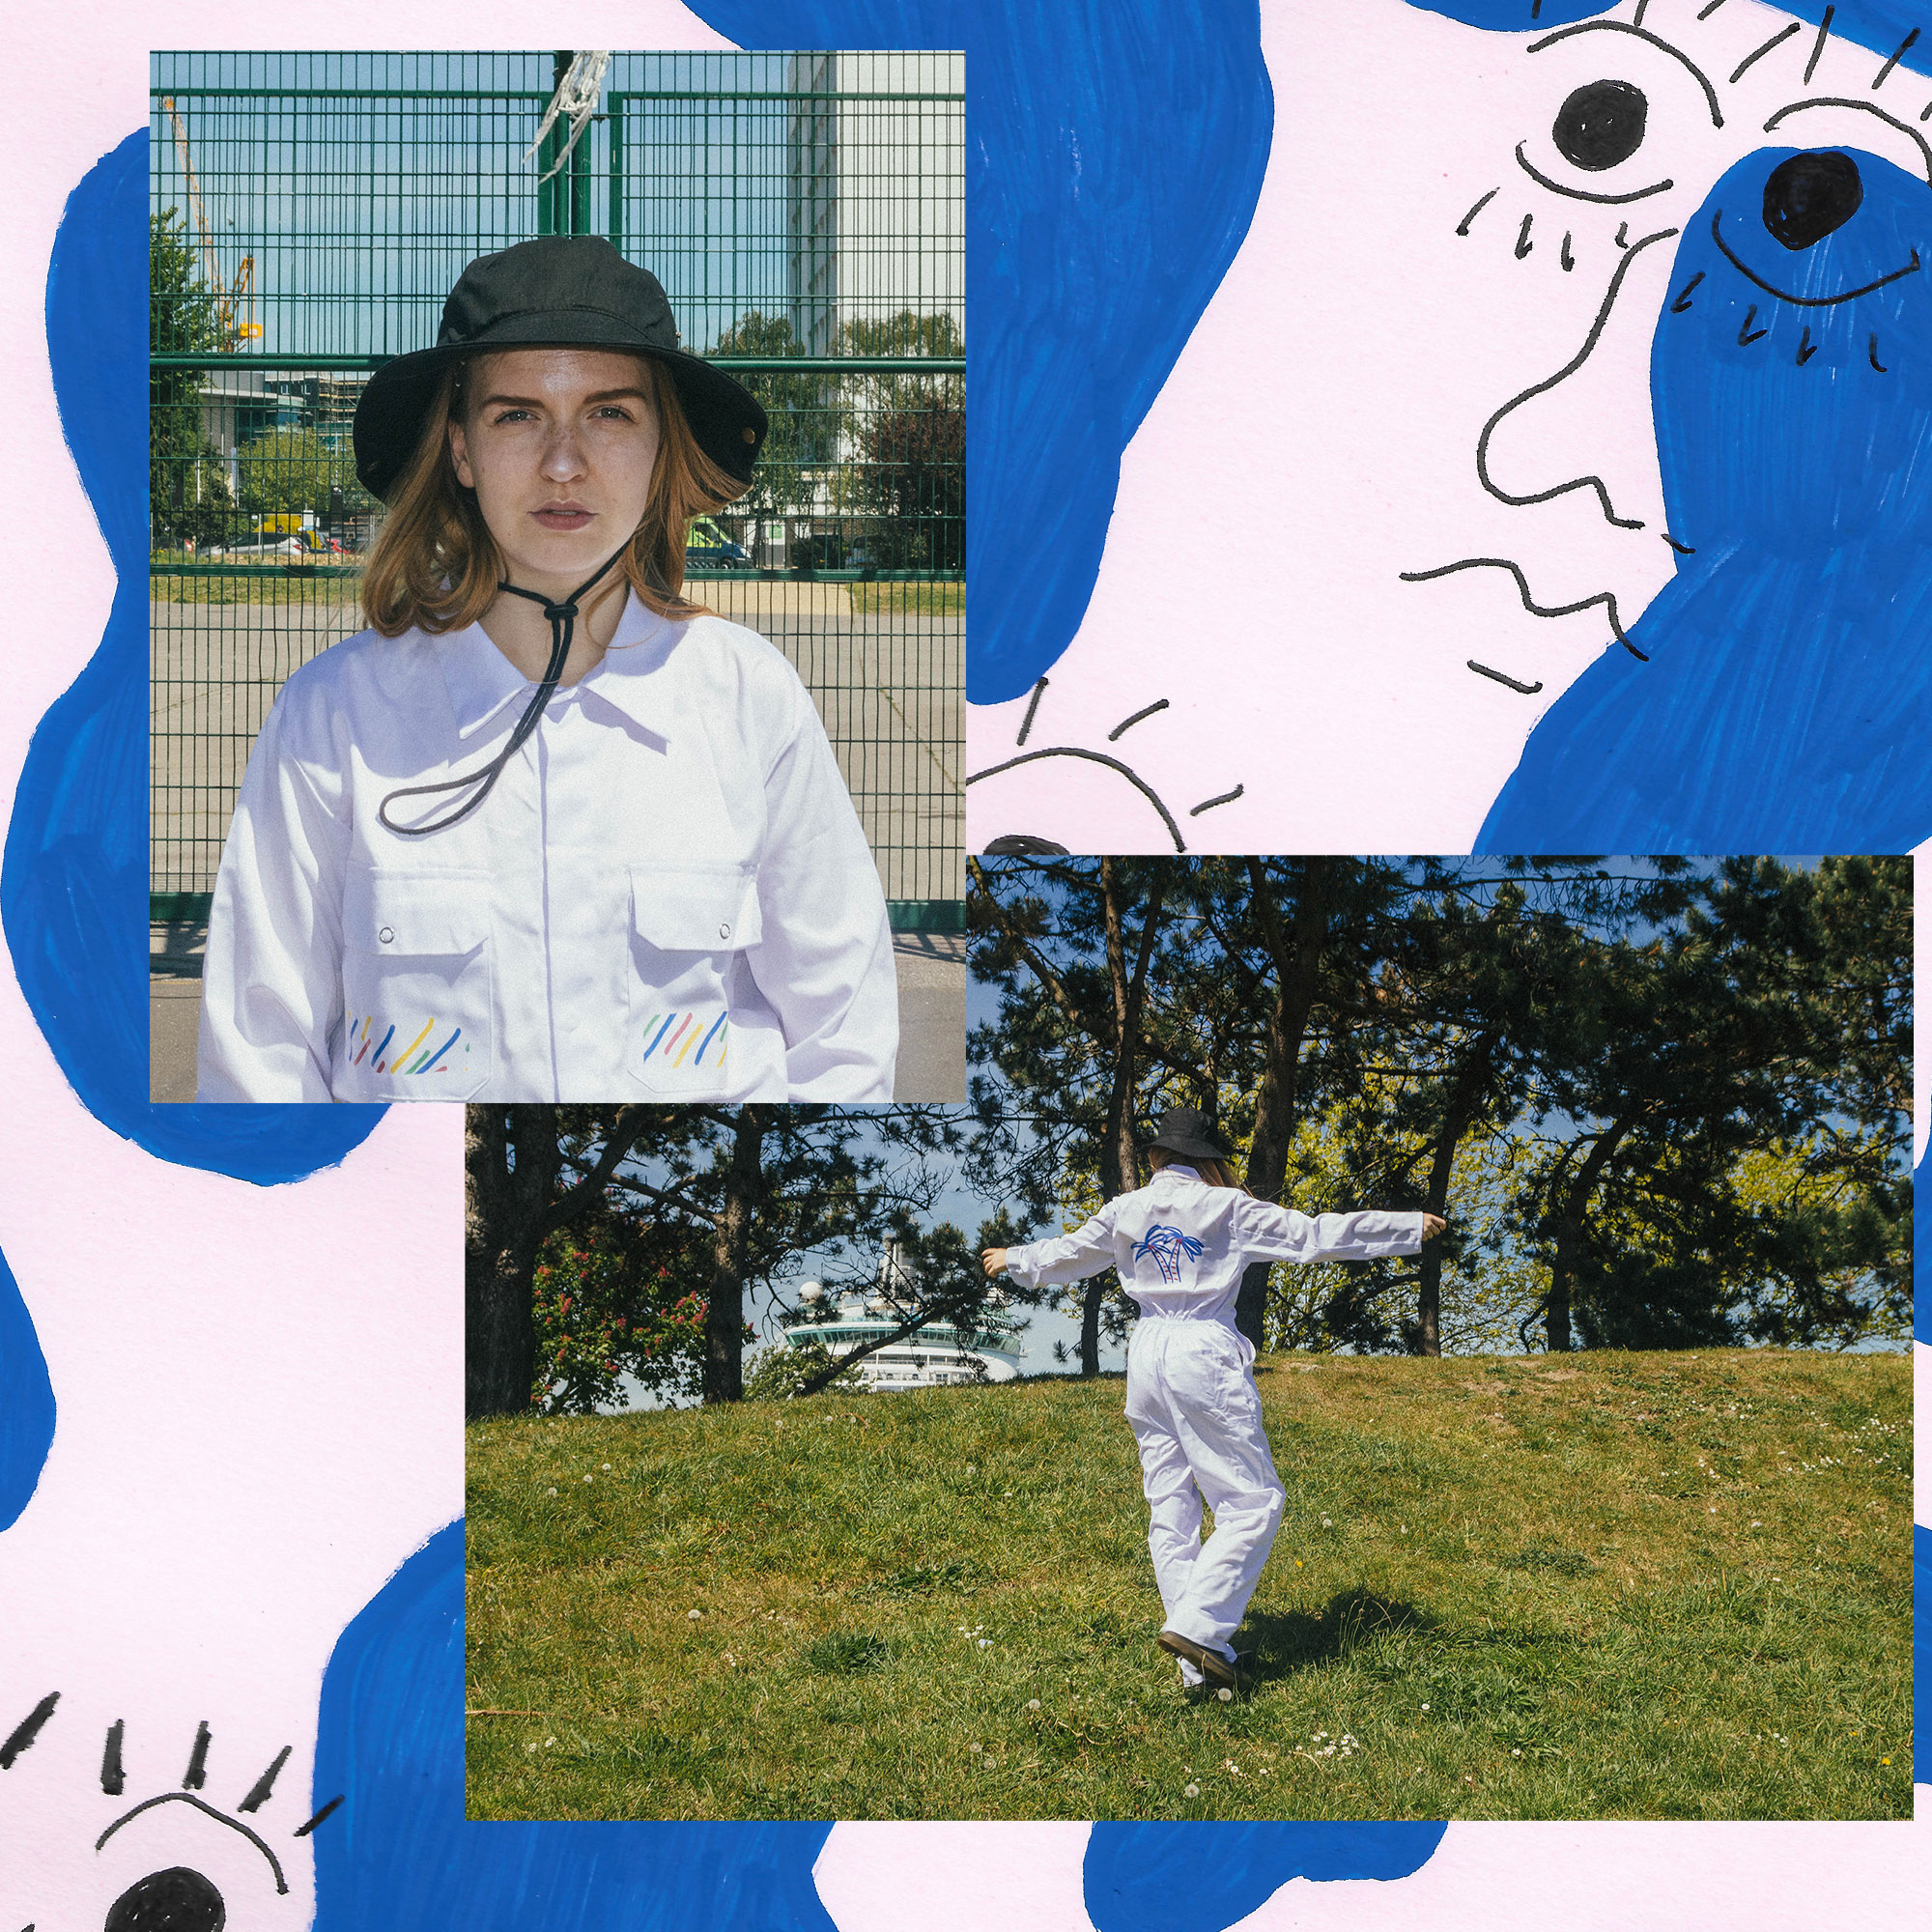 lookbook panel 2.jpg